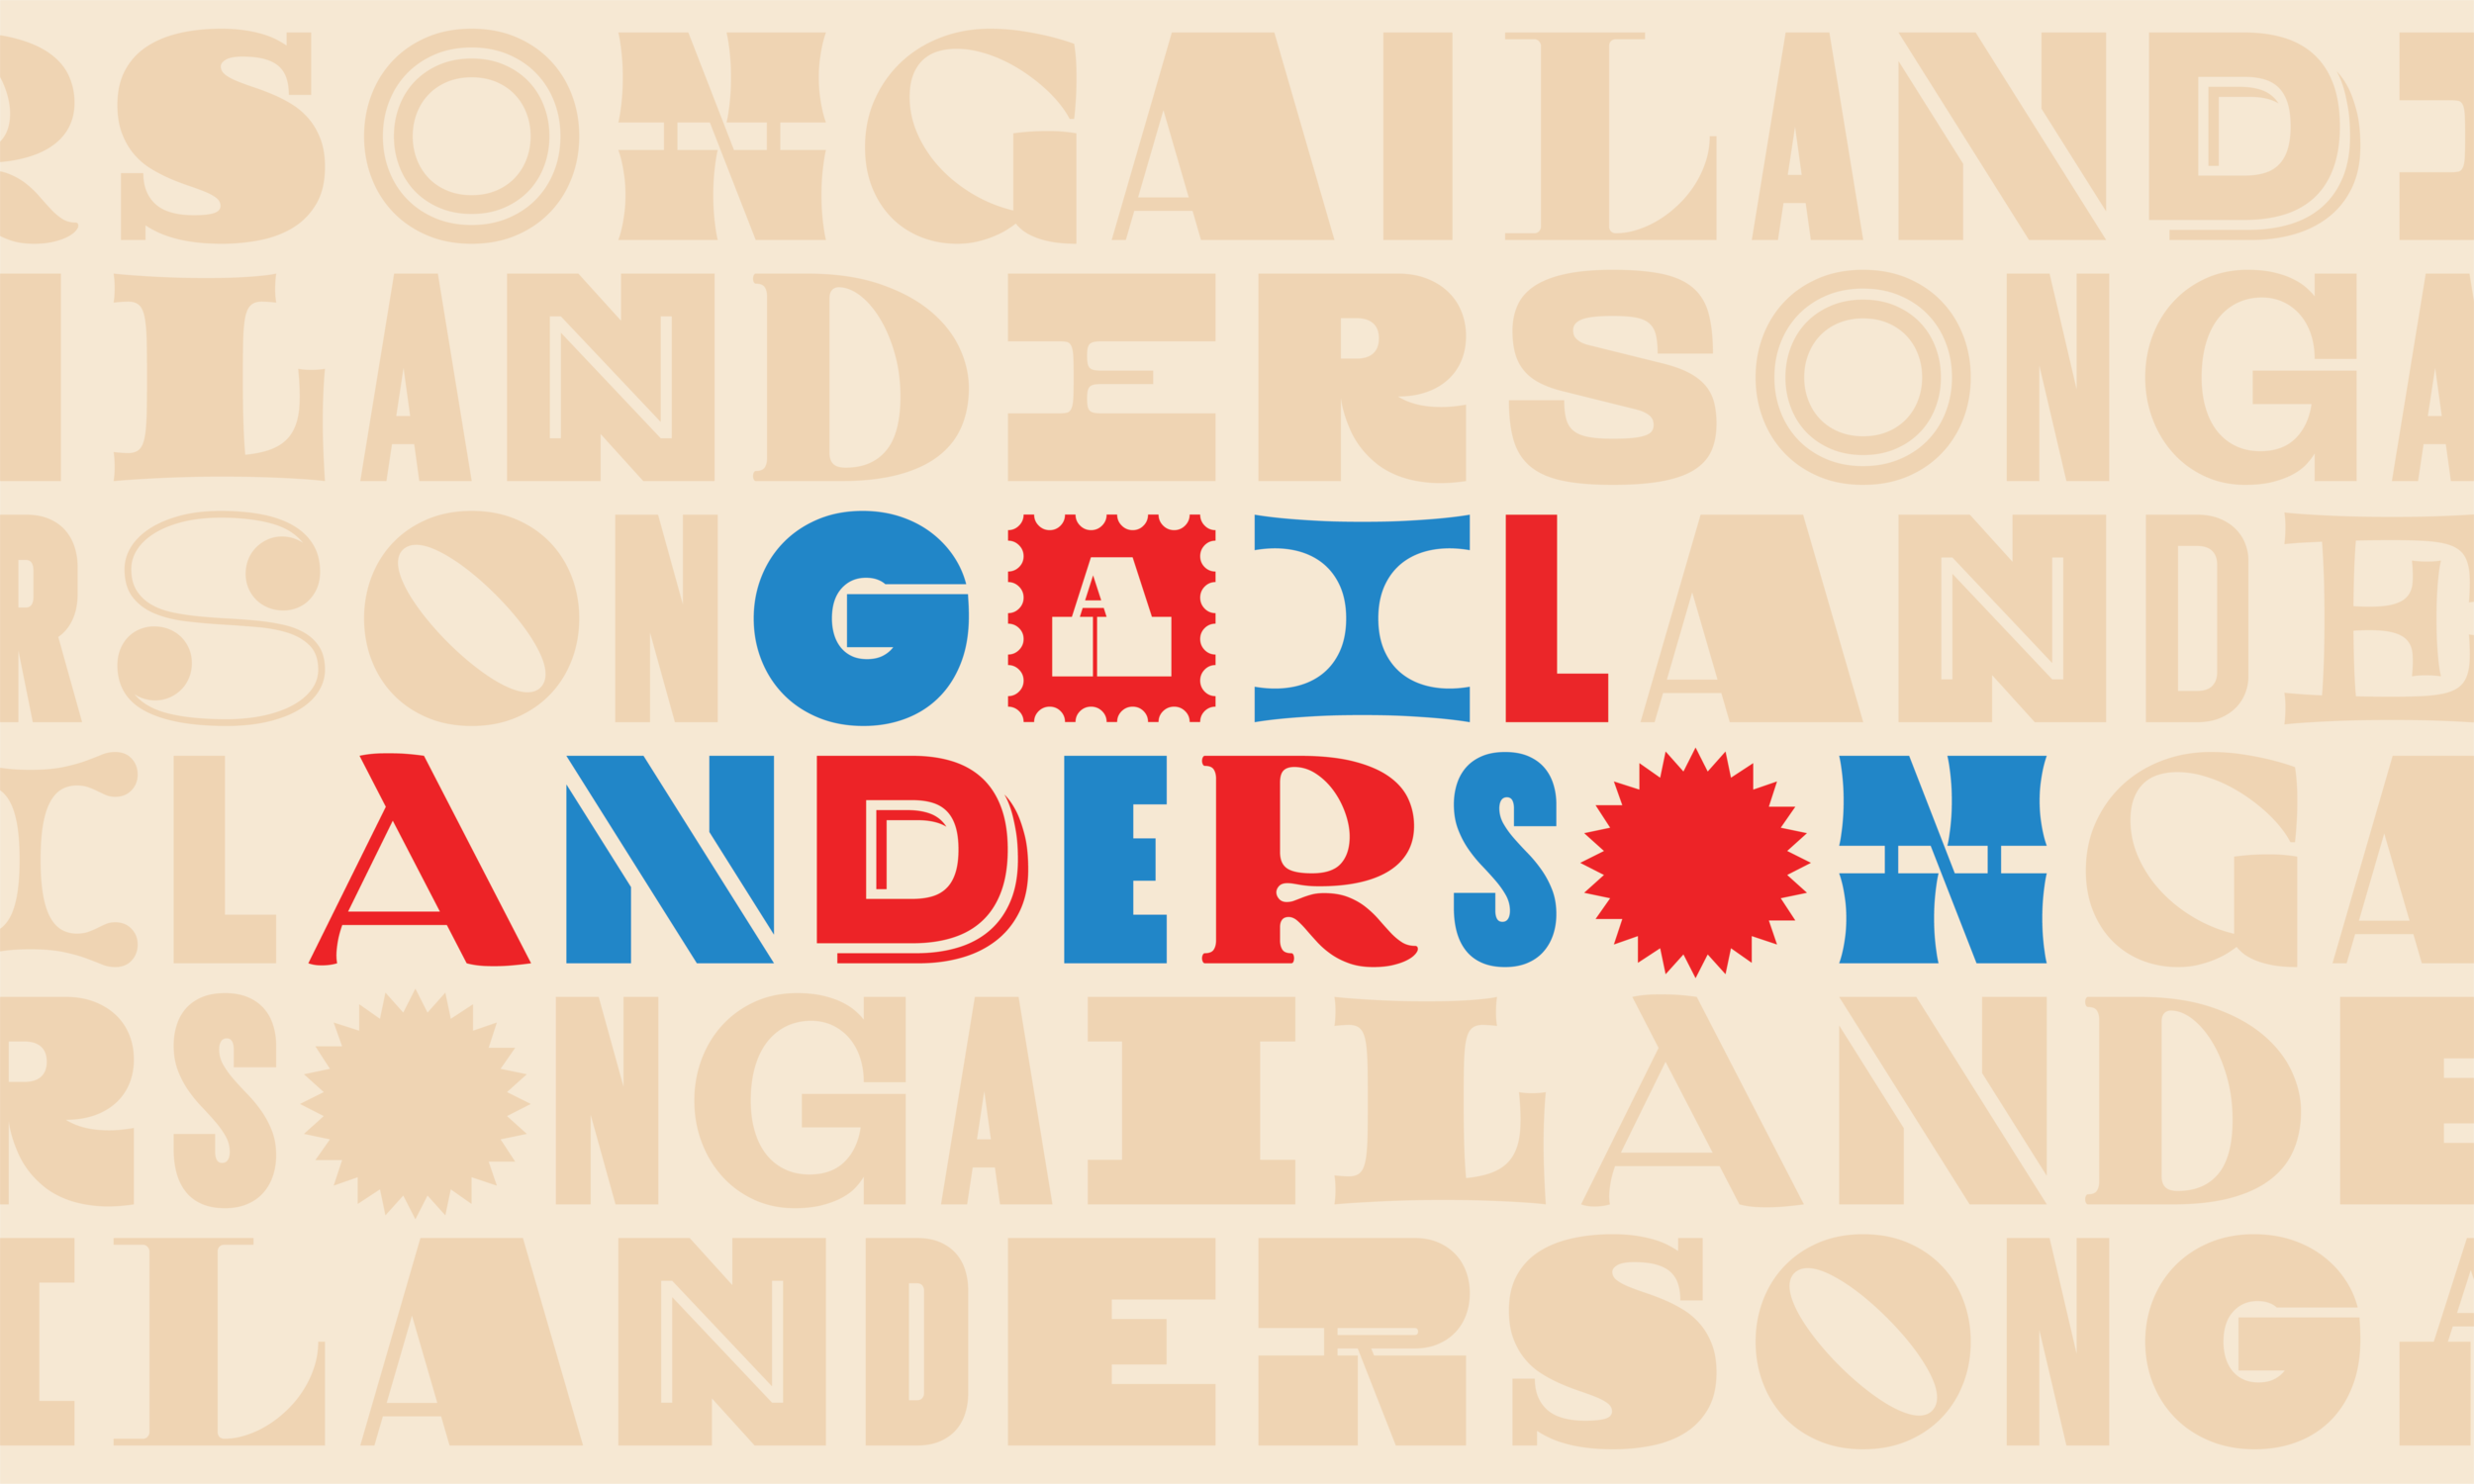 gail_anderson_banner-04.png